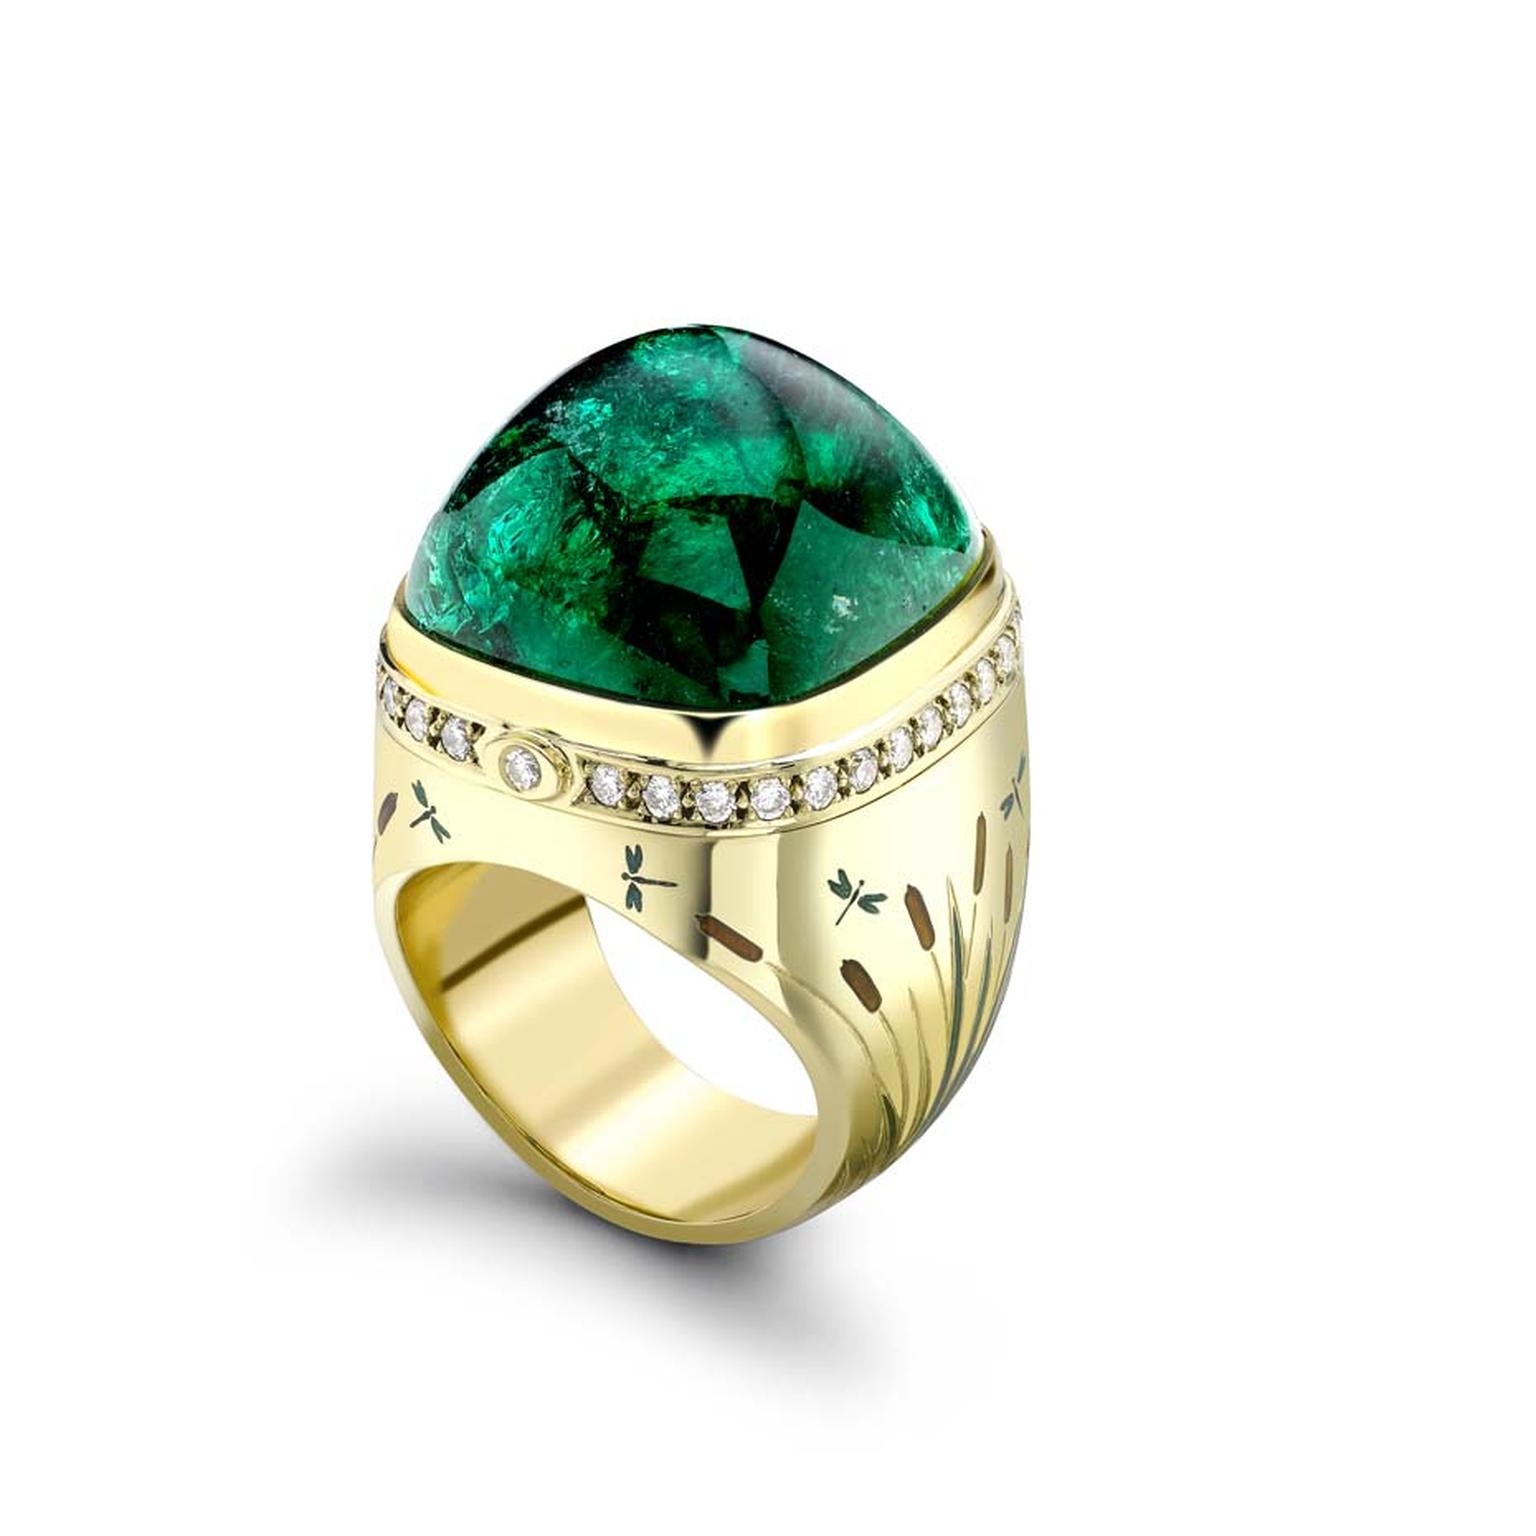 Theo Fennell's Kissing Frogs emerald ring in yellow gold, topped with a 42.66ct emerald from Gemfields' mine in Zambia.